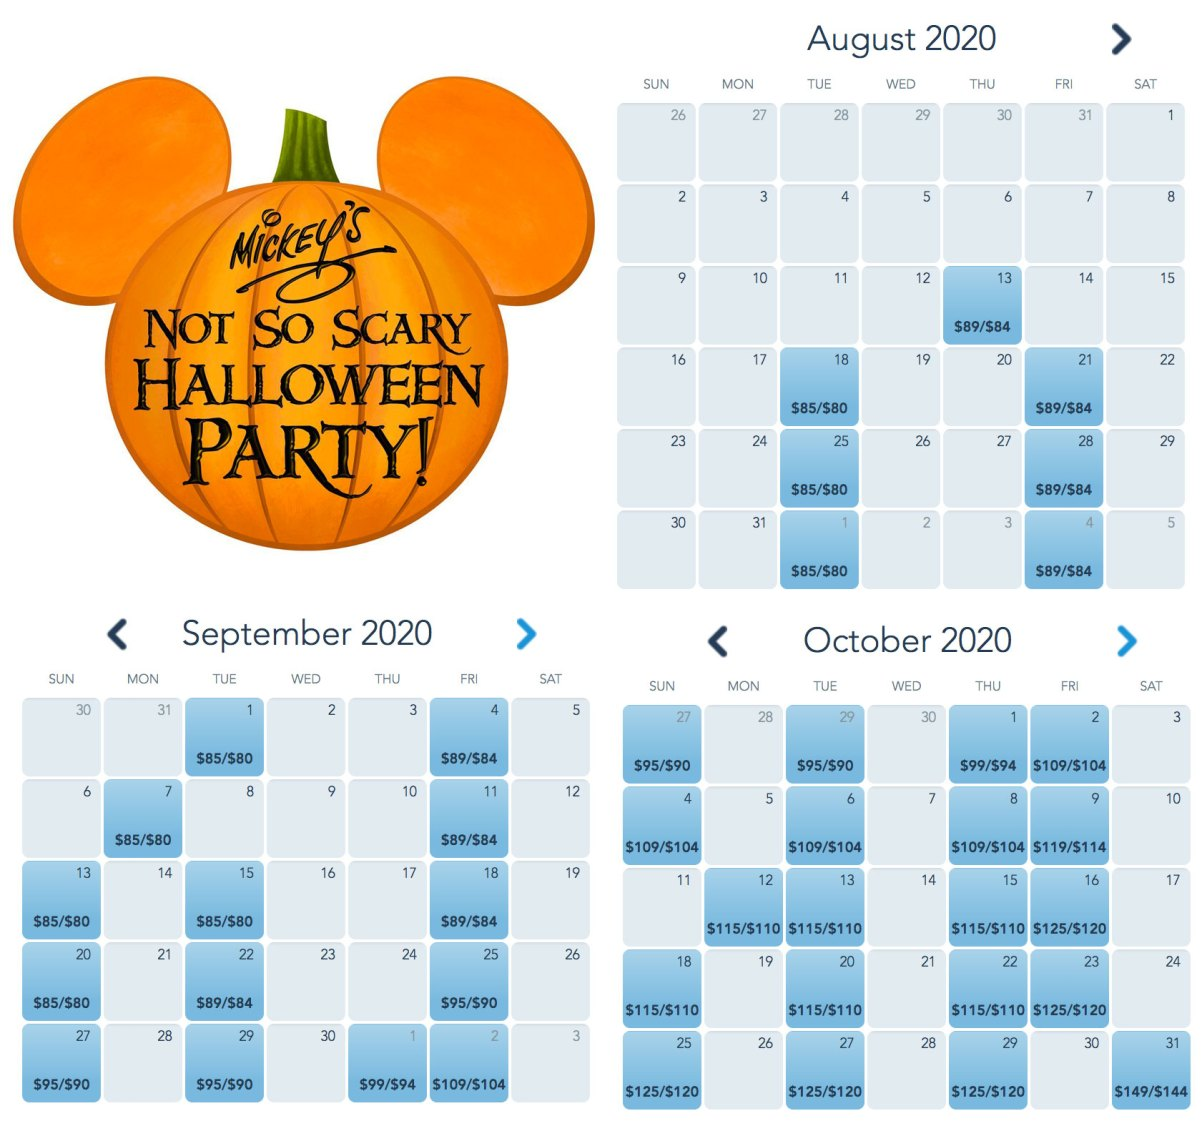 Disney Mickeys Not So Scary Halloween Party 2020 Dates Tickets Now on Sale for 2020 Mickey's Not So Scary Halloween Party